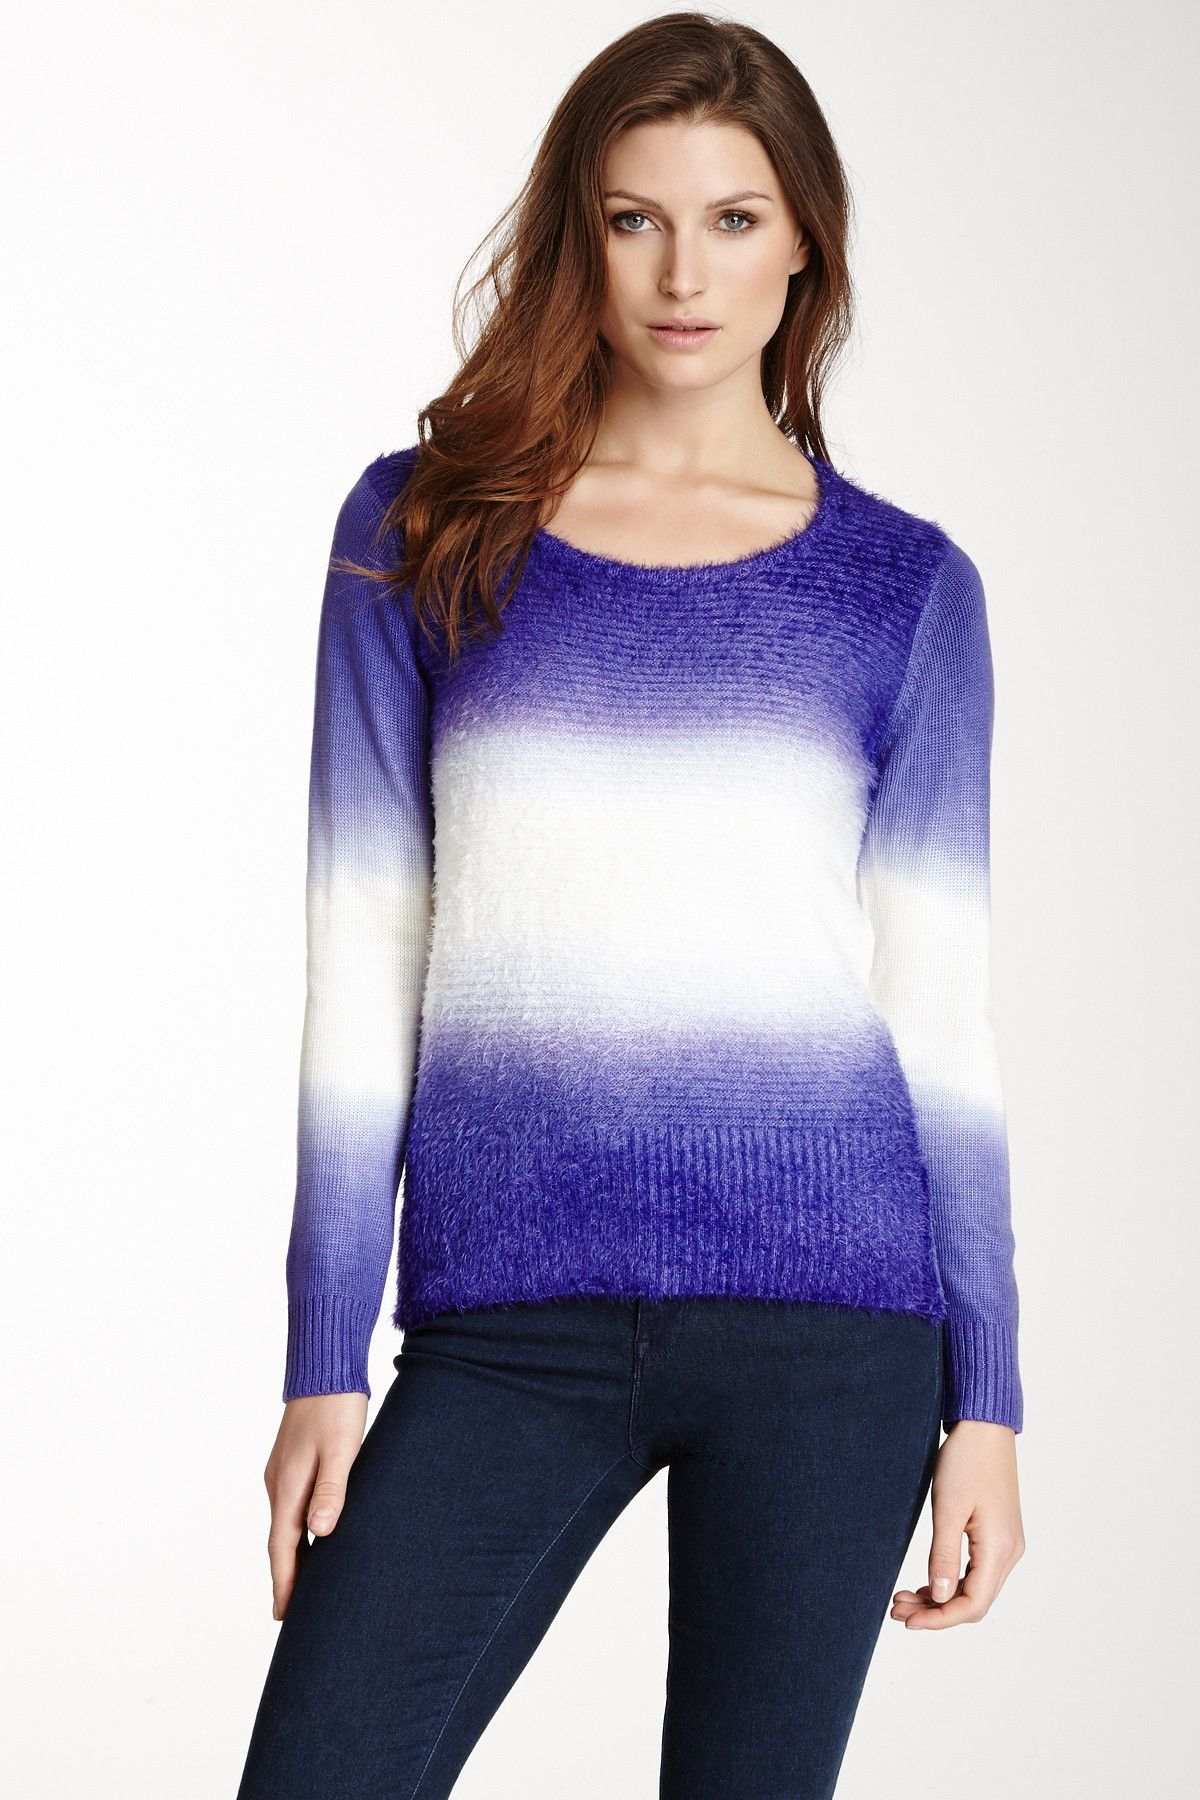 Vip Two-Tone Feather Ombre Eyelash Pullover on HauteLook